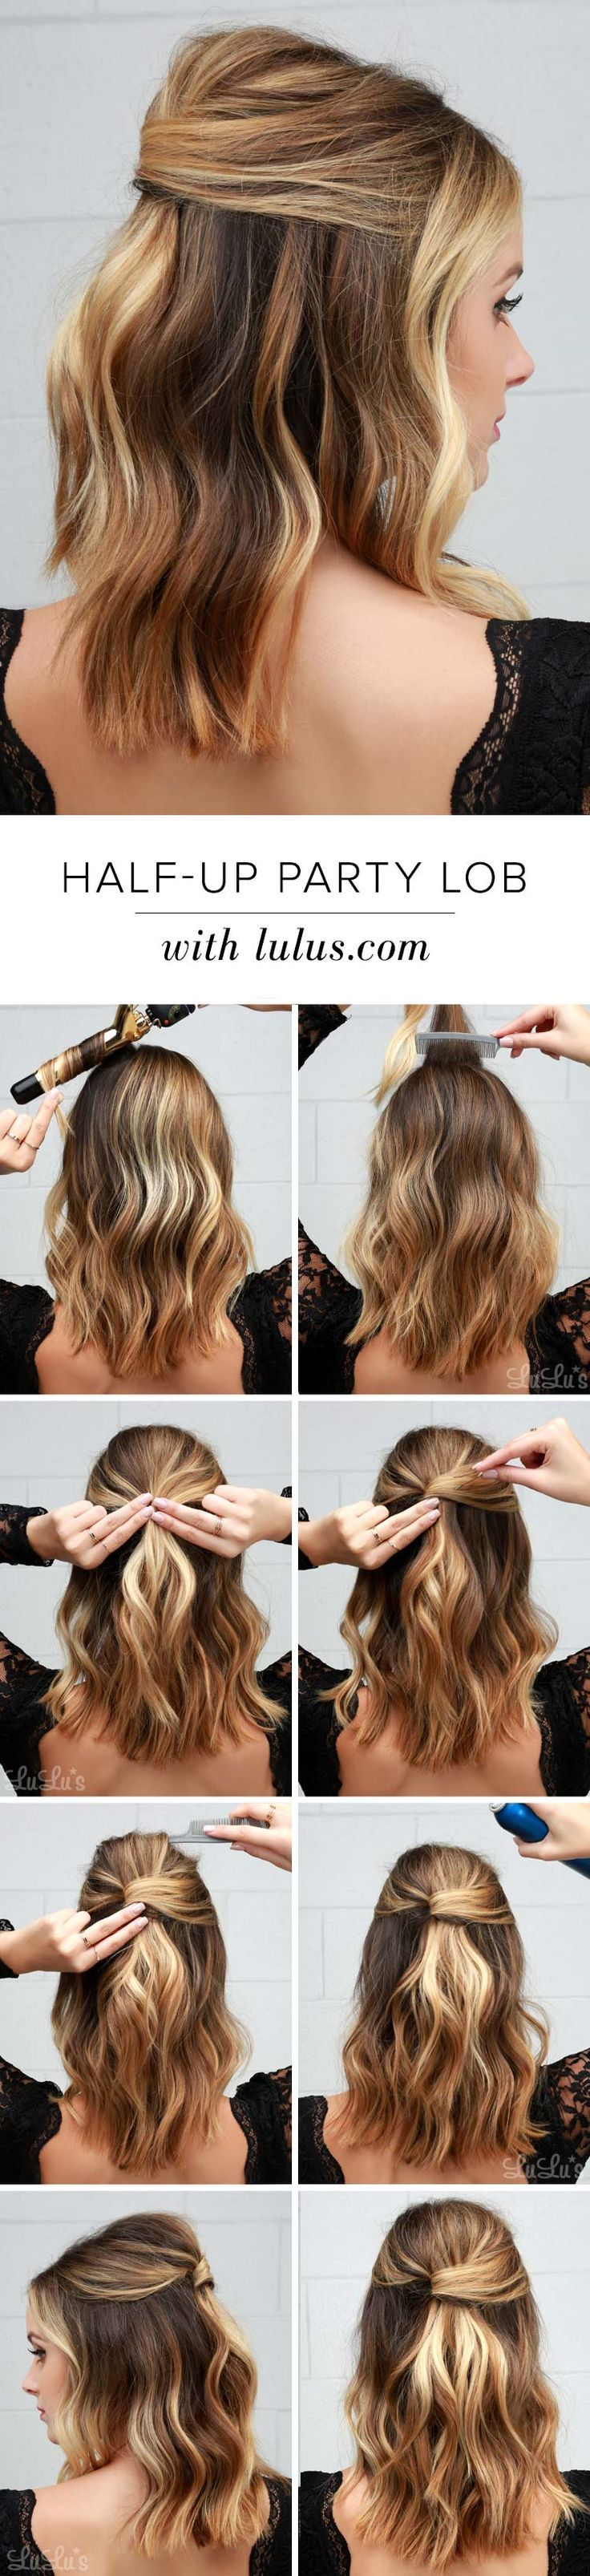 51 best Hairstyles images on Pinterest